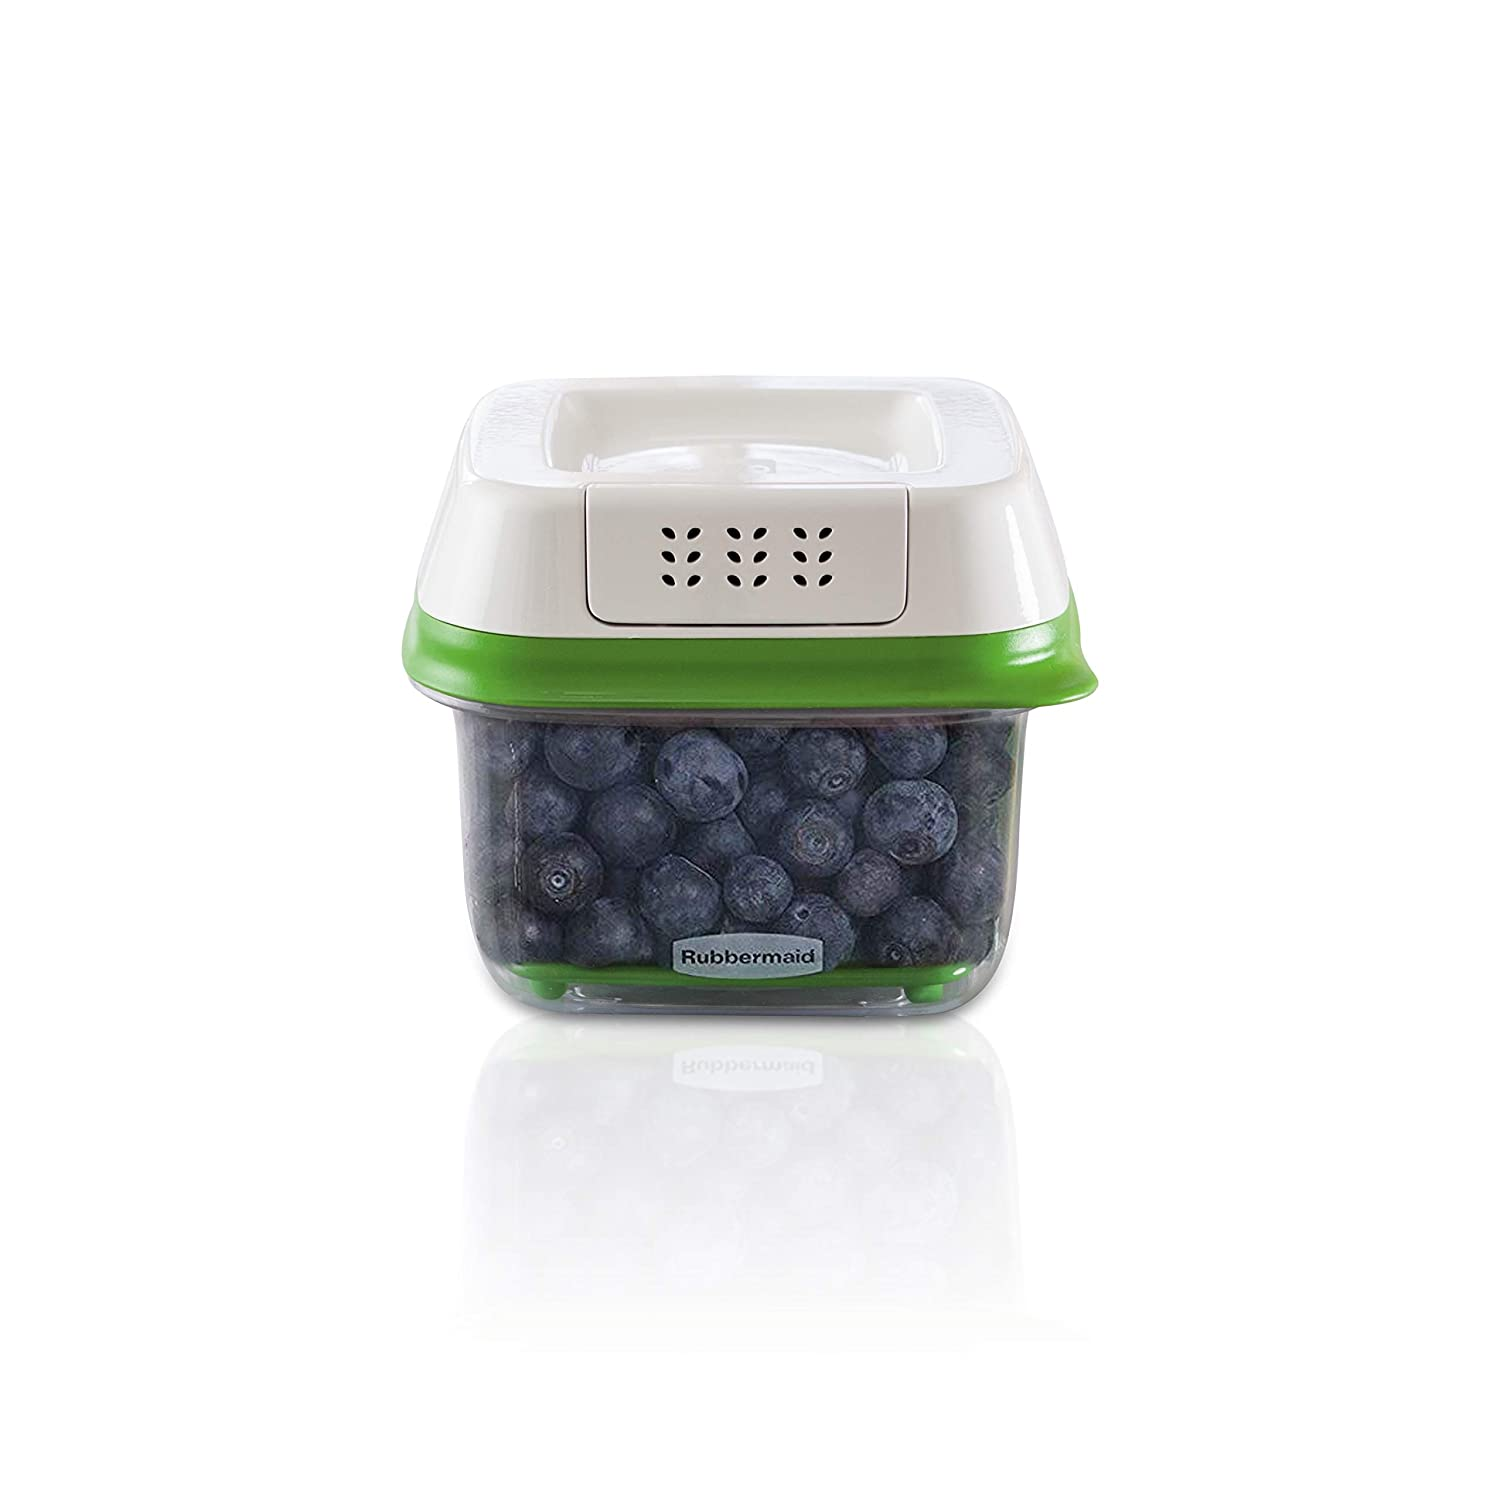 Rubbermaid FreshWorks Produce Saver Food Storage Container, Small, 2.5 Cup, Green 1920480